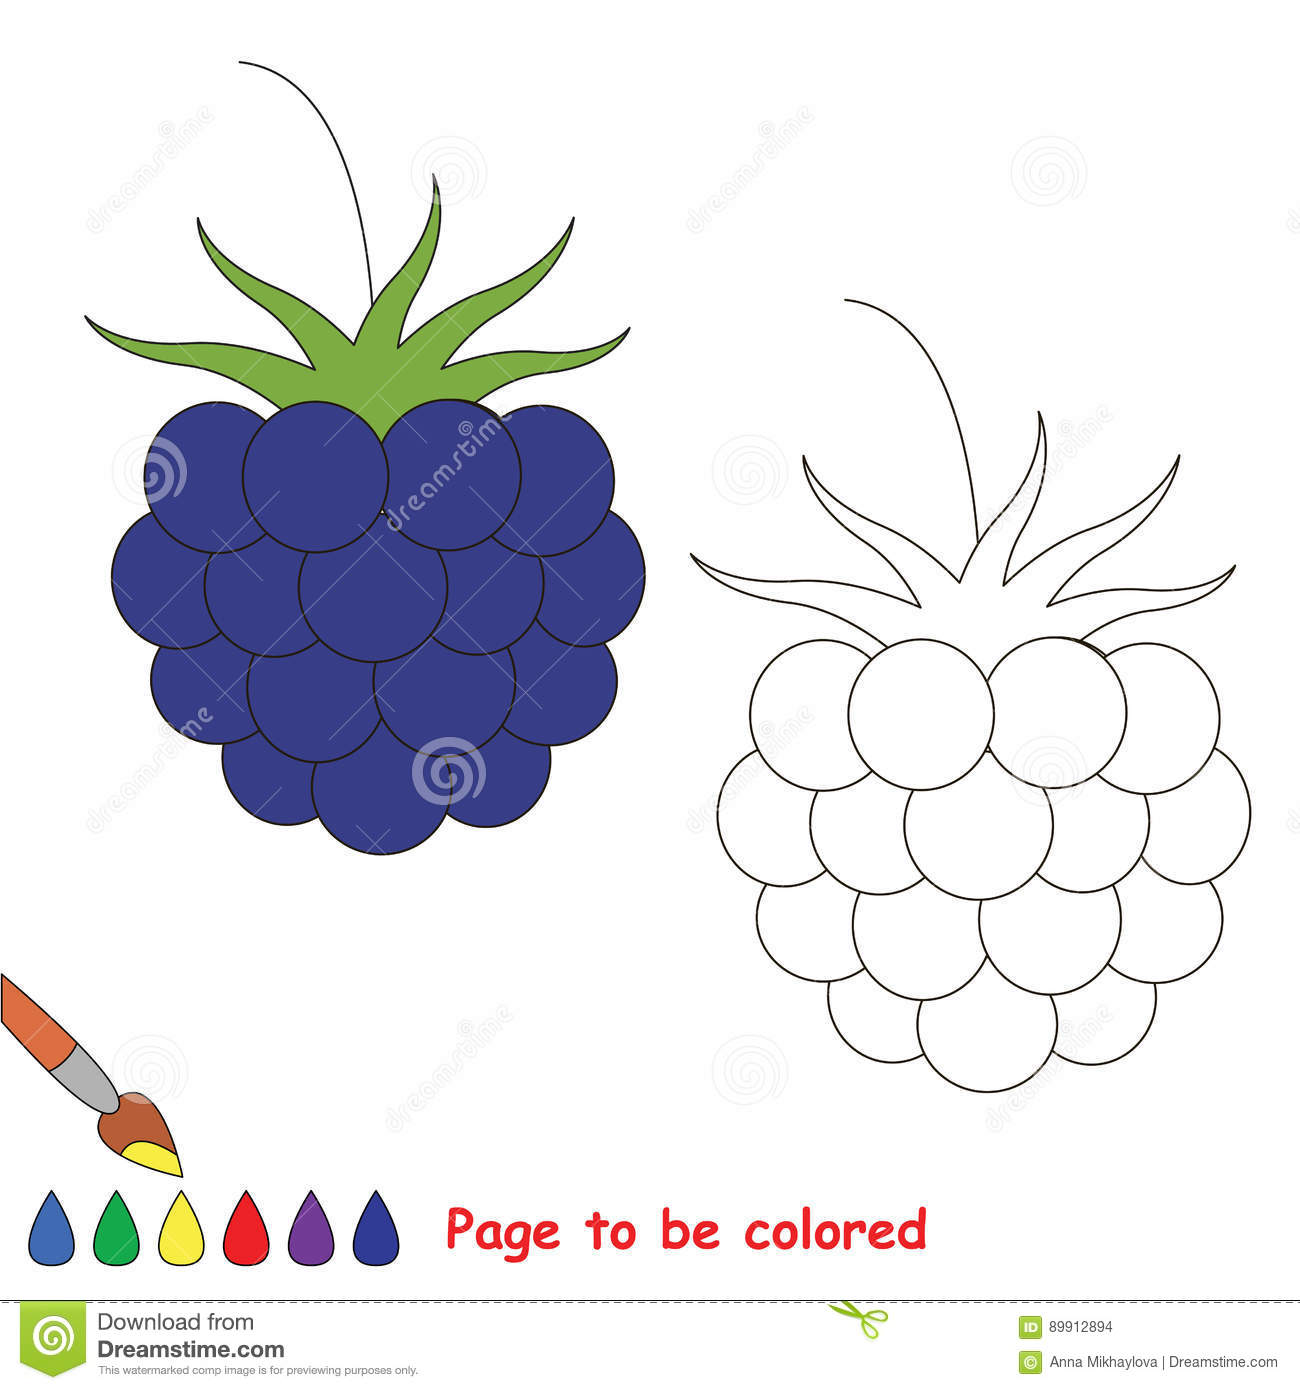 Coloring Kid Game Educational Page To Be Colored Stock